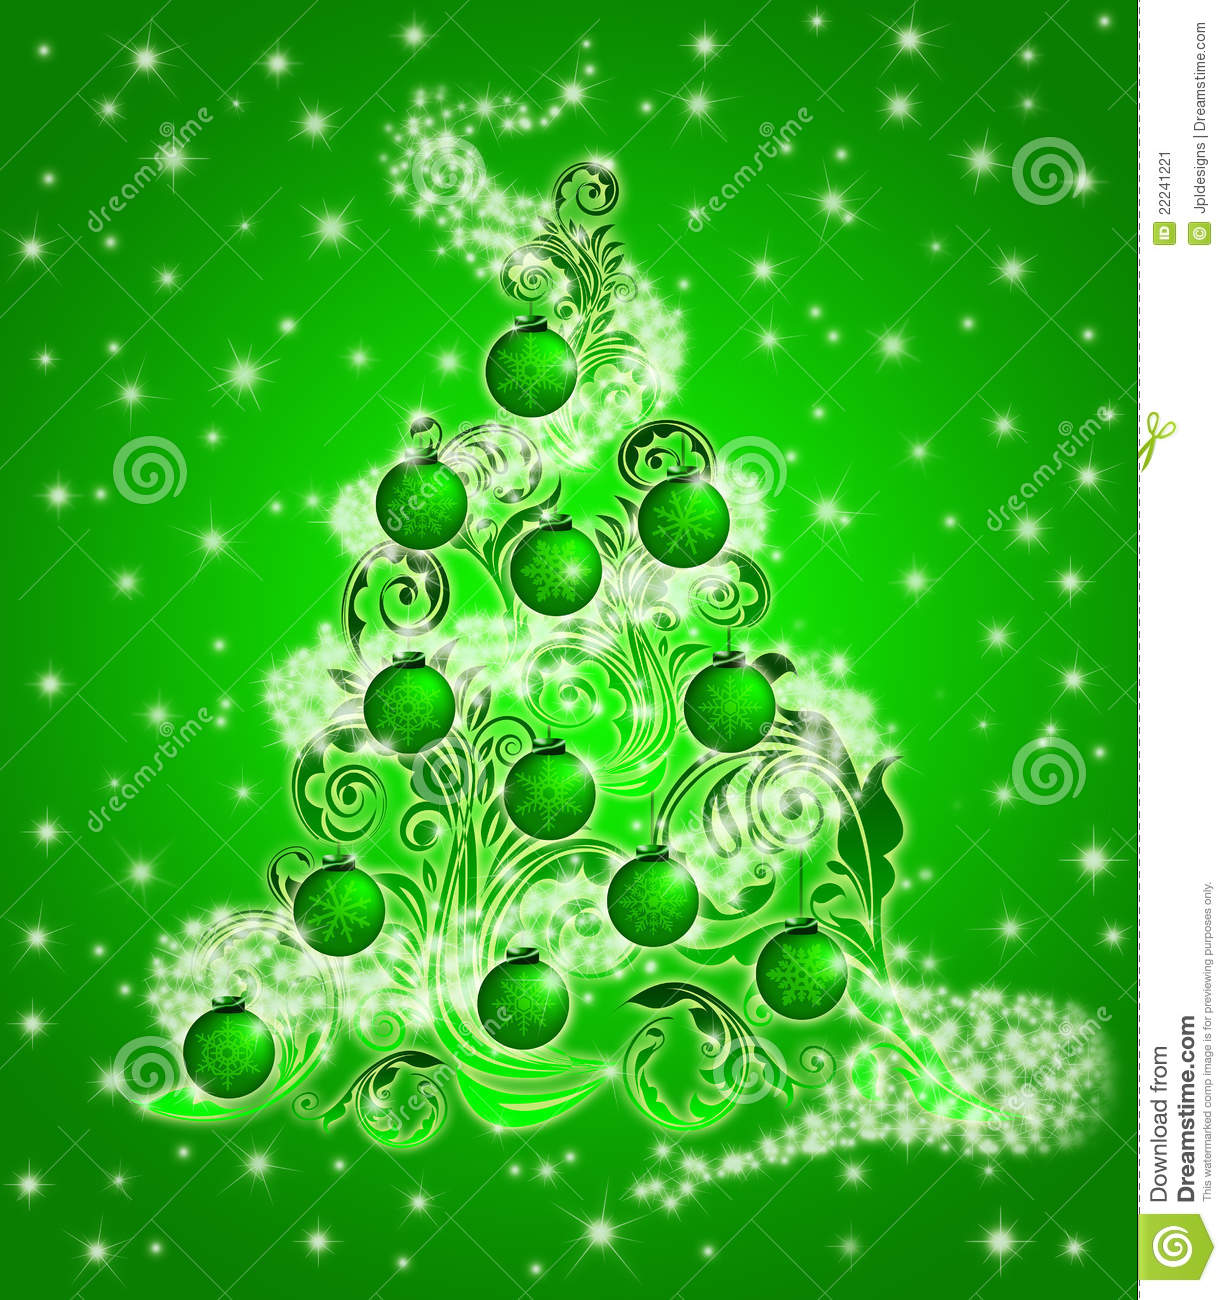 Ornamental christmas trees - Christmas Tree Leaf Swirls Sparkles And Ornaments